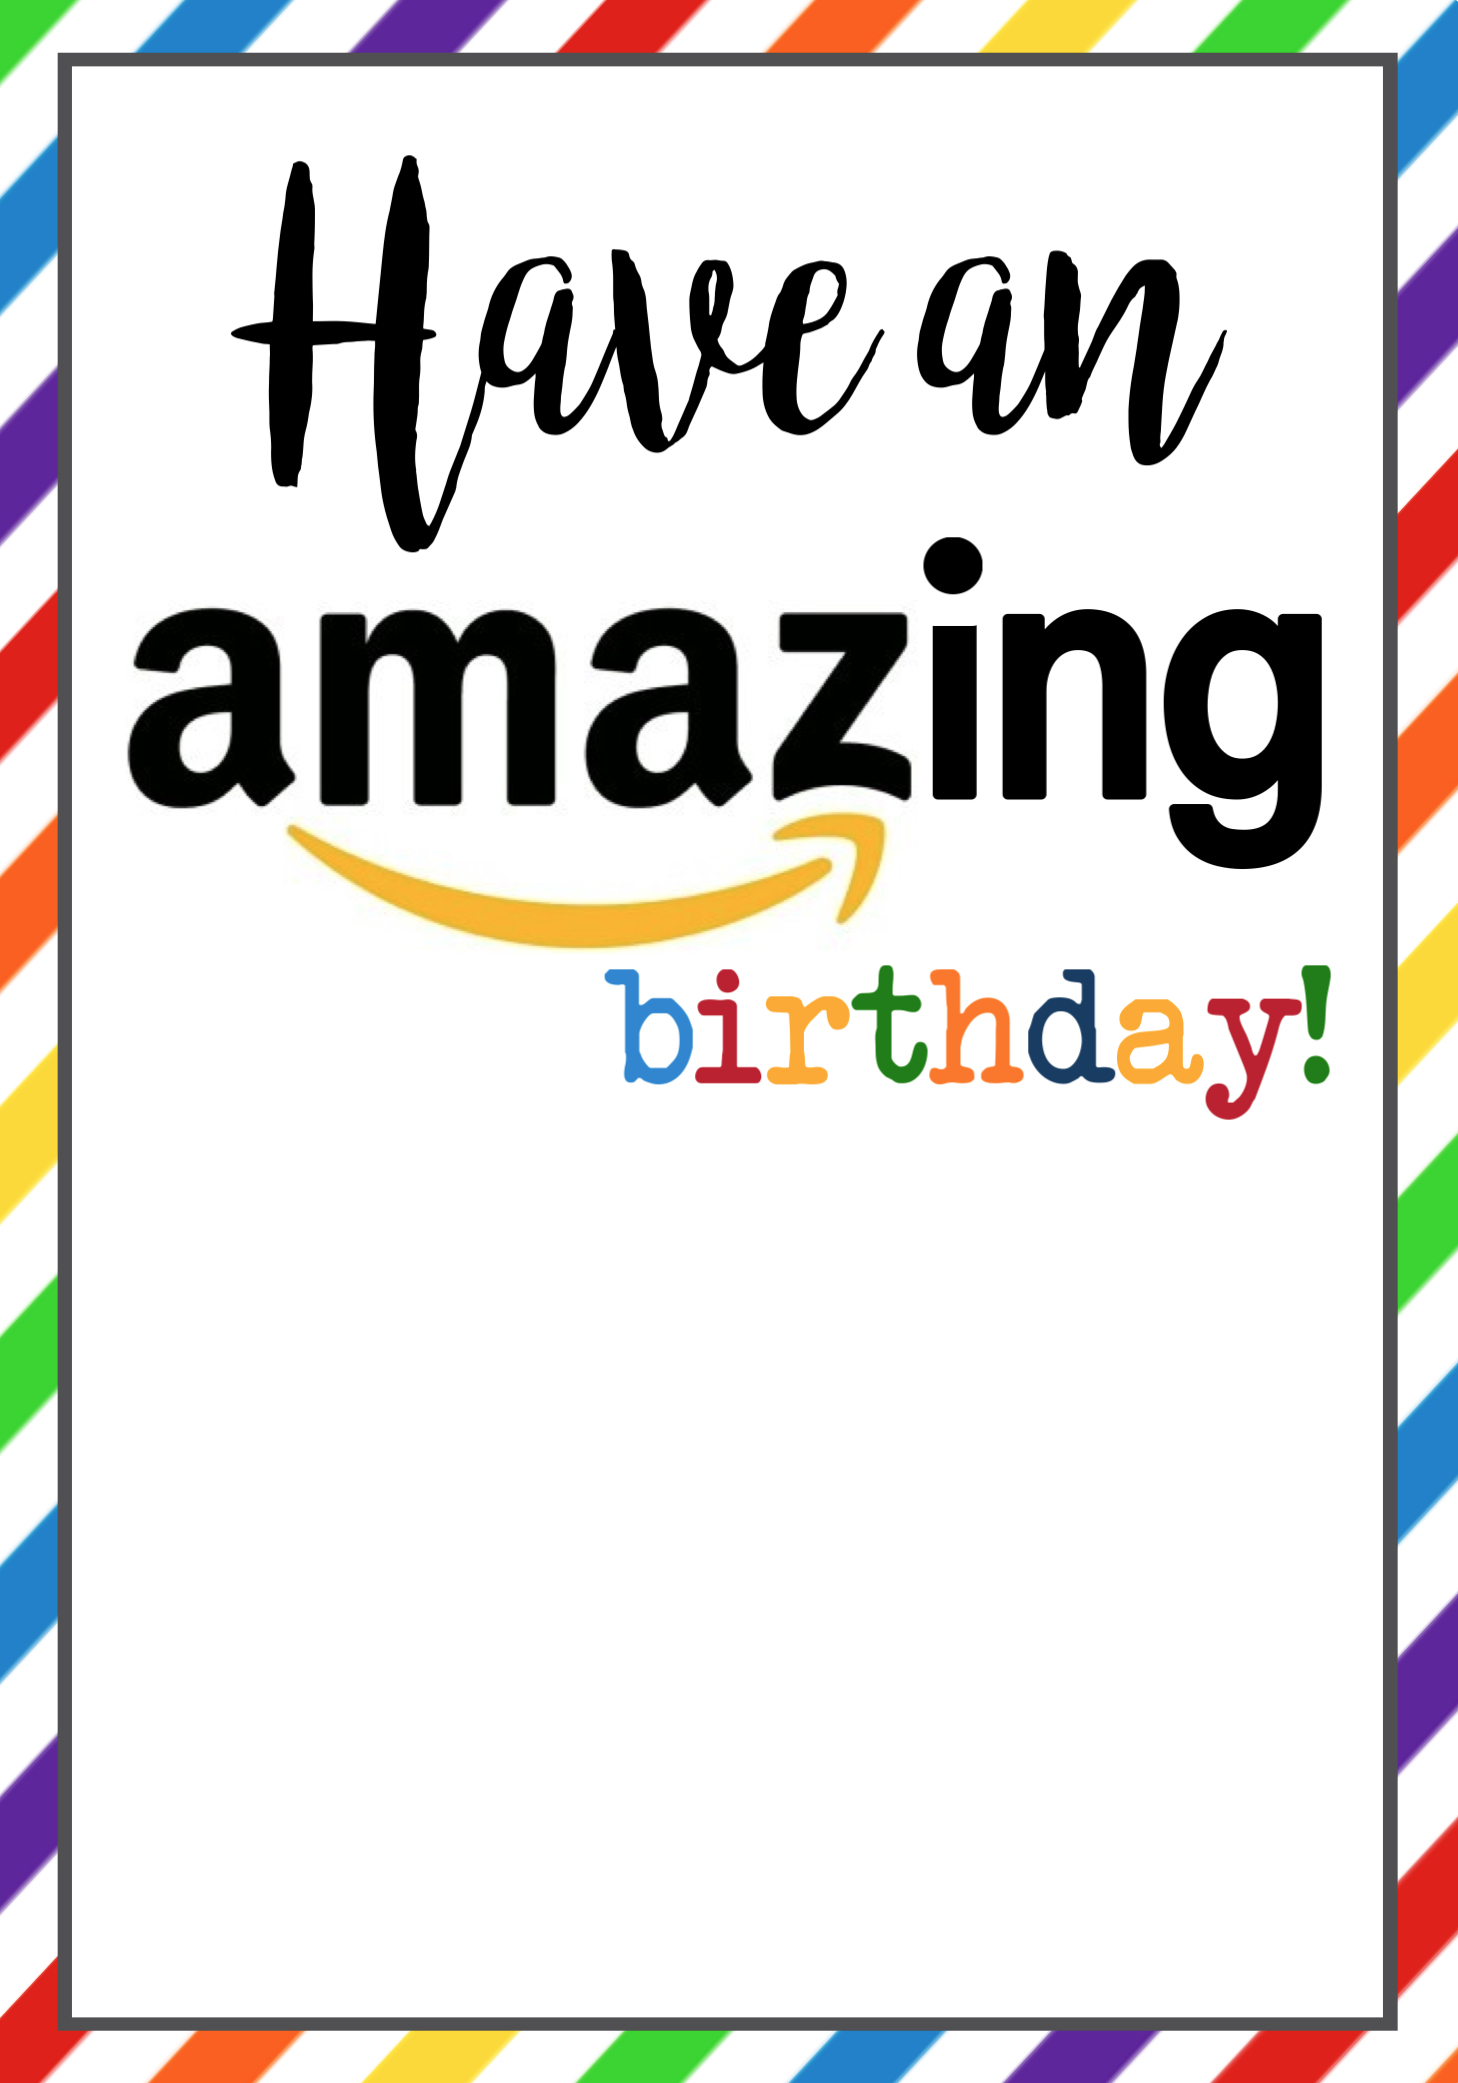 graphic relating to Amazon Gift Card Printable called Amazon Birthday Playing cards Cost-free Printable - Paper Path Design and style